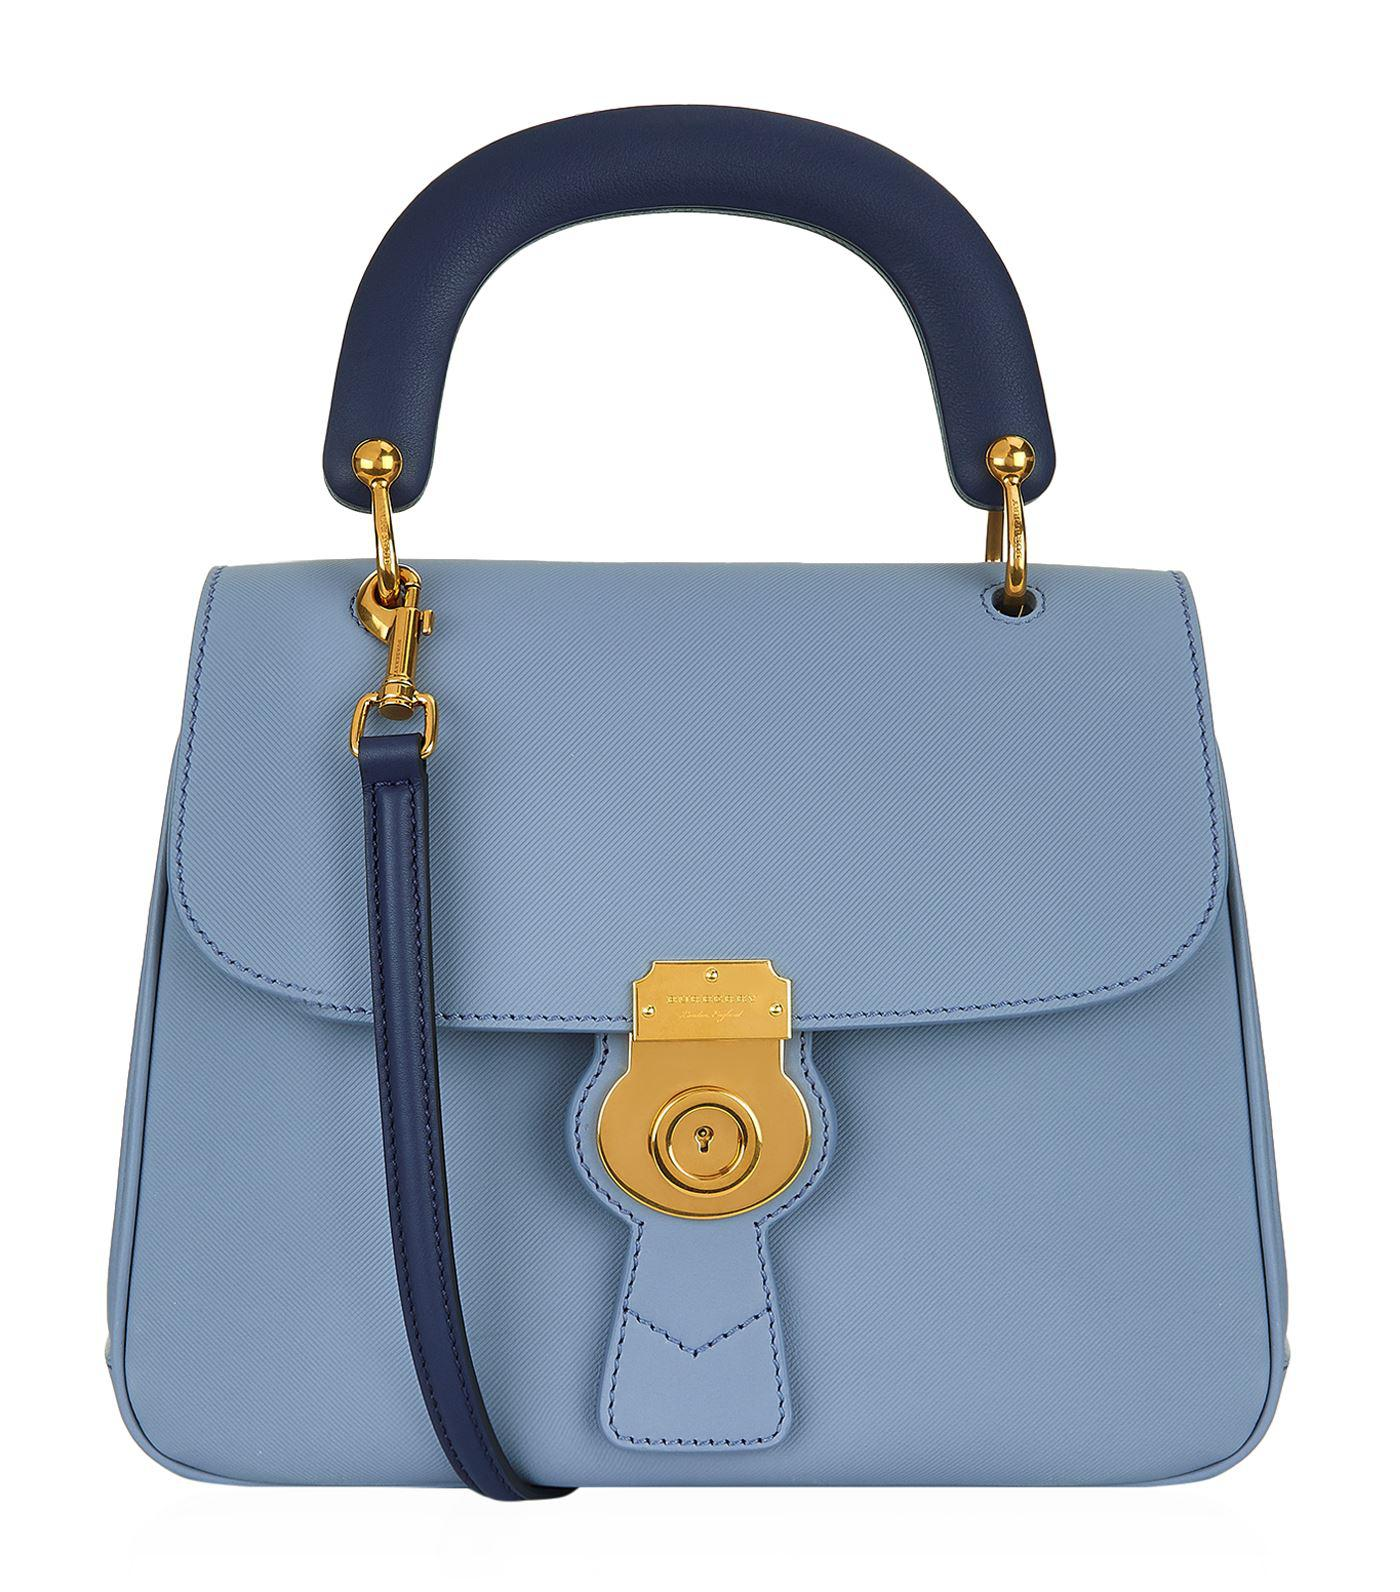 Lyst - Burberry Medium D88 Top Handle Bag in Blue 929d7a17dab87